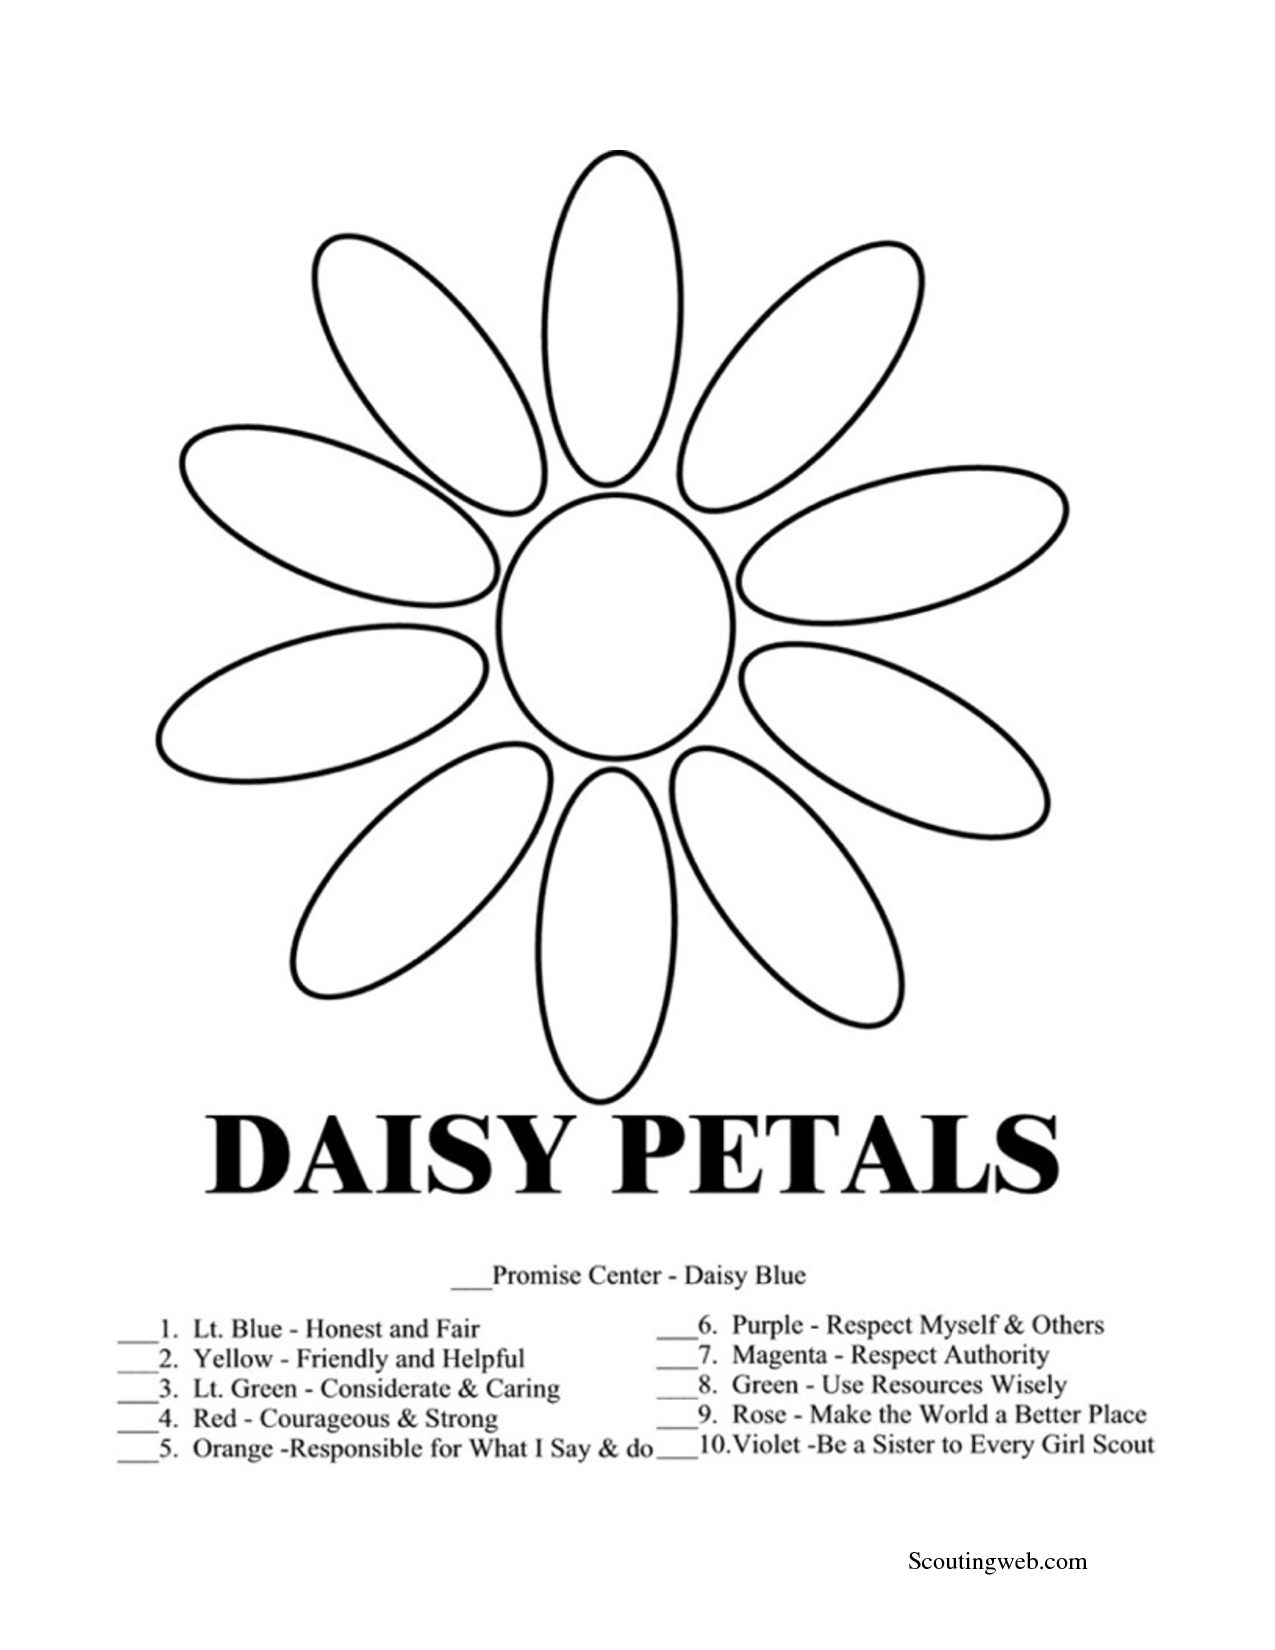 daisy girl scout coloring pages Daisy Petal Coloring Page | Daisy | Daisy girl scouts, Girl scouts  daisy girl scout coloring pages